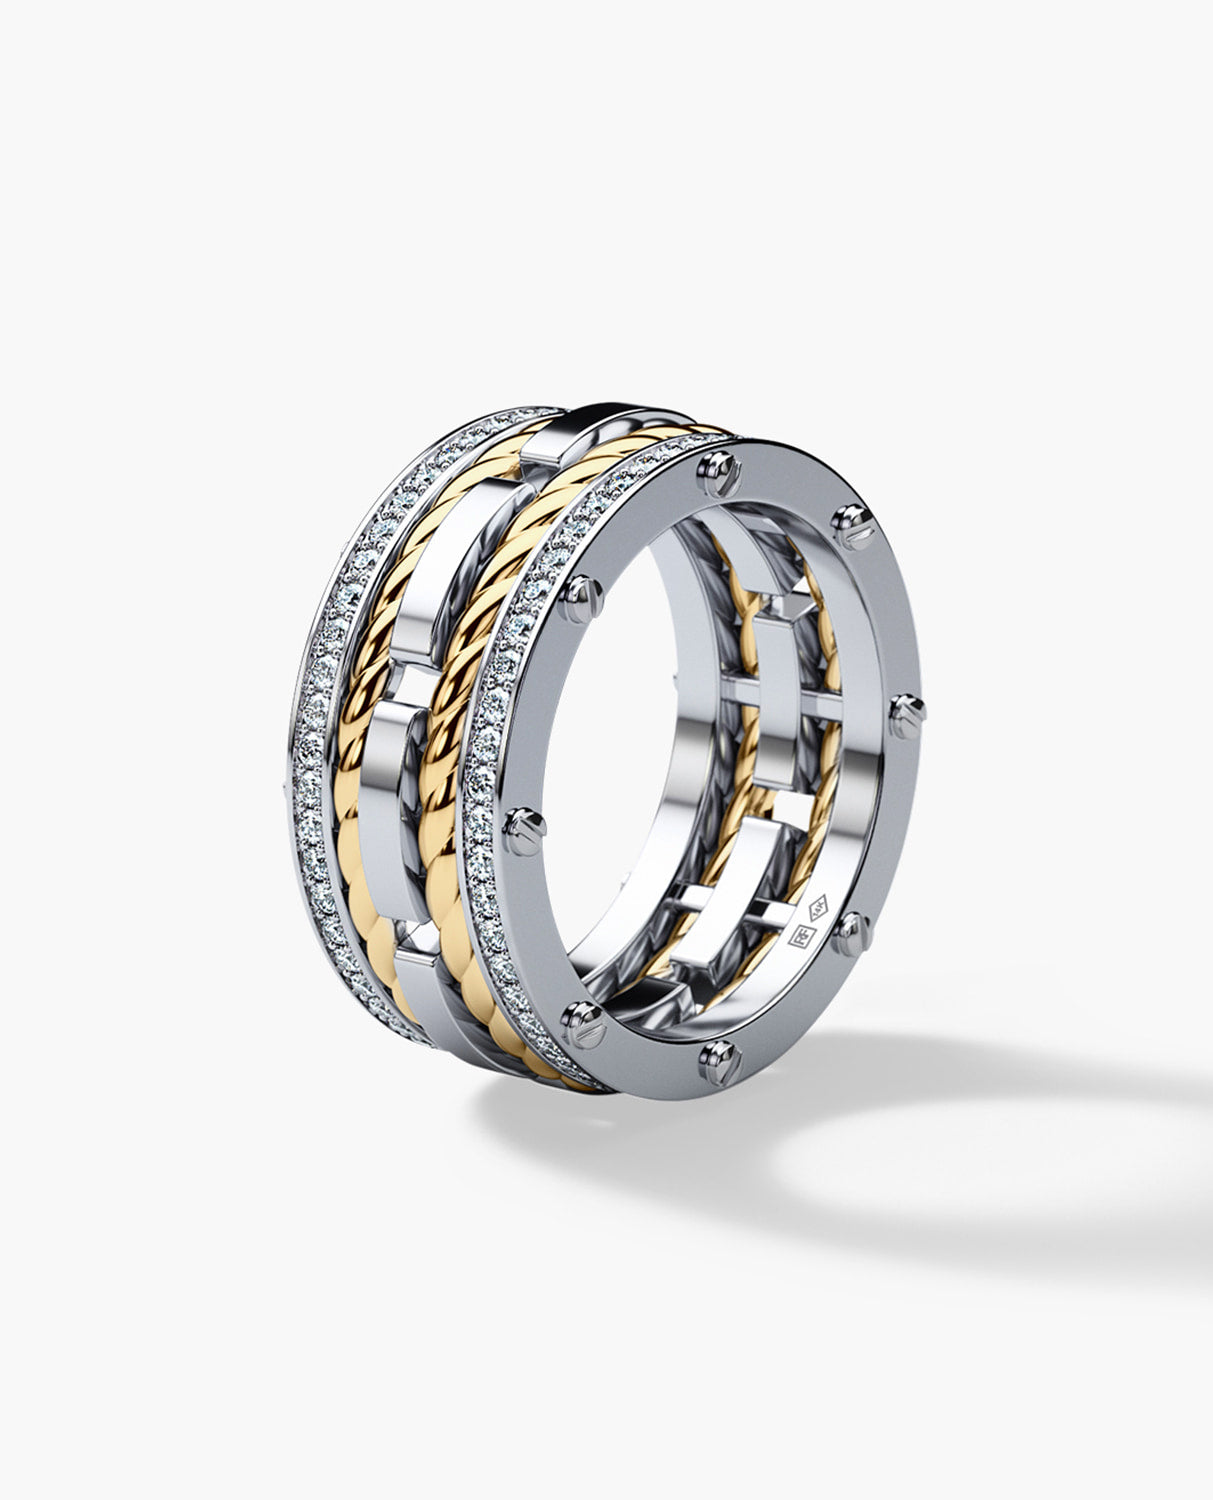 It is an image of ROPES Mens Two-Tone Gold Wedding Band with 40.40ct Diamonds